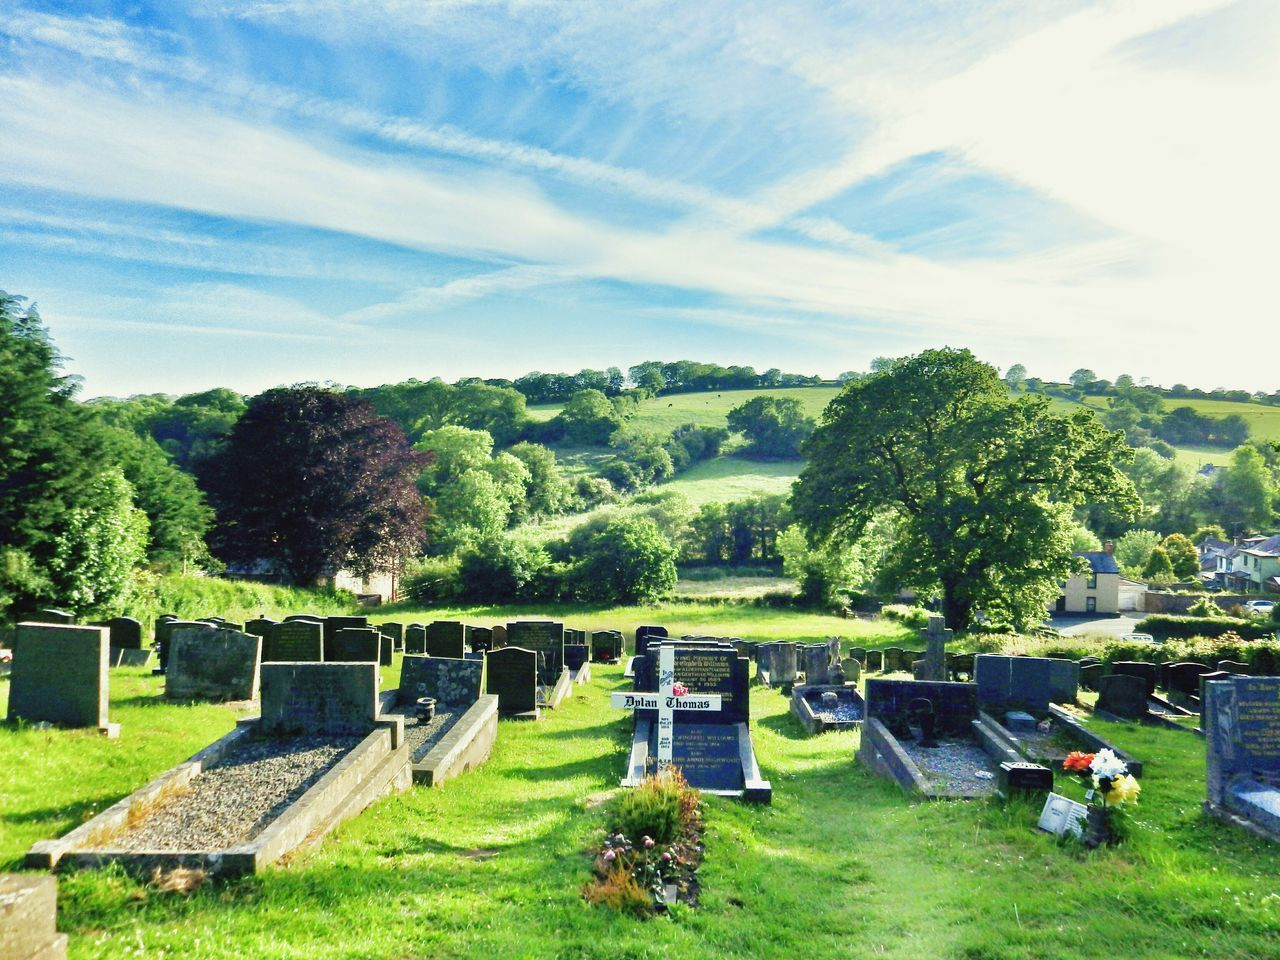 Wales Photography Taking Photos Check This Out Churchyard Graveyard DylanThomas Outdoors Countryside Oldtown